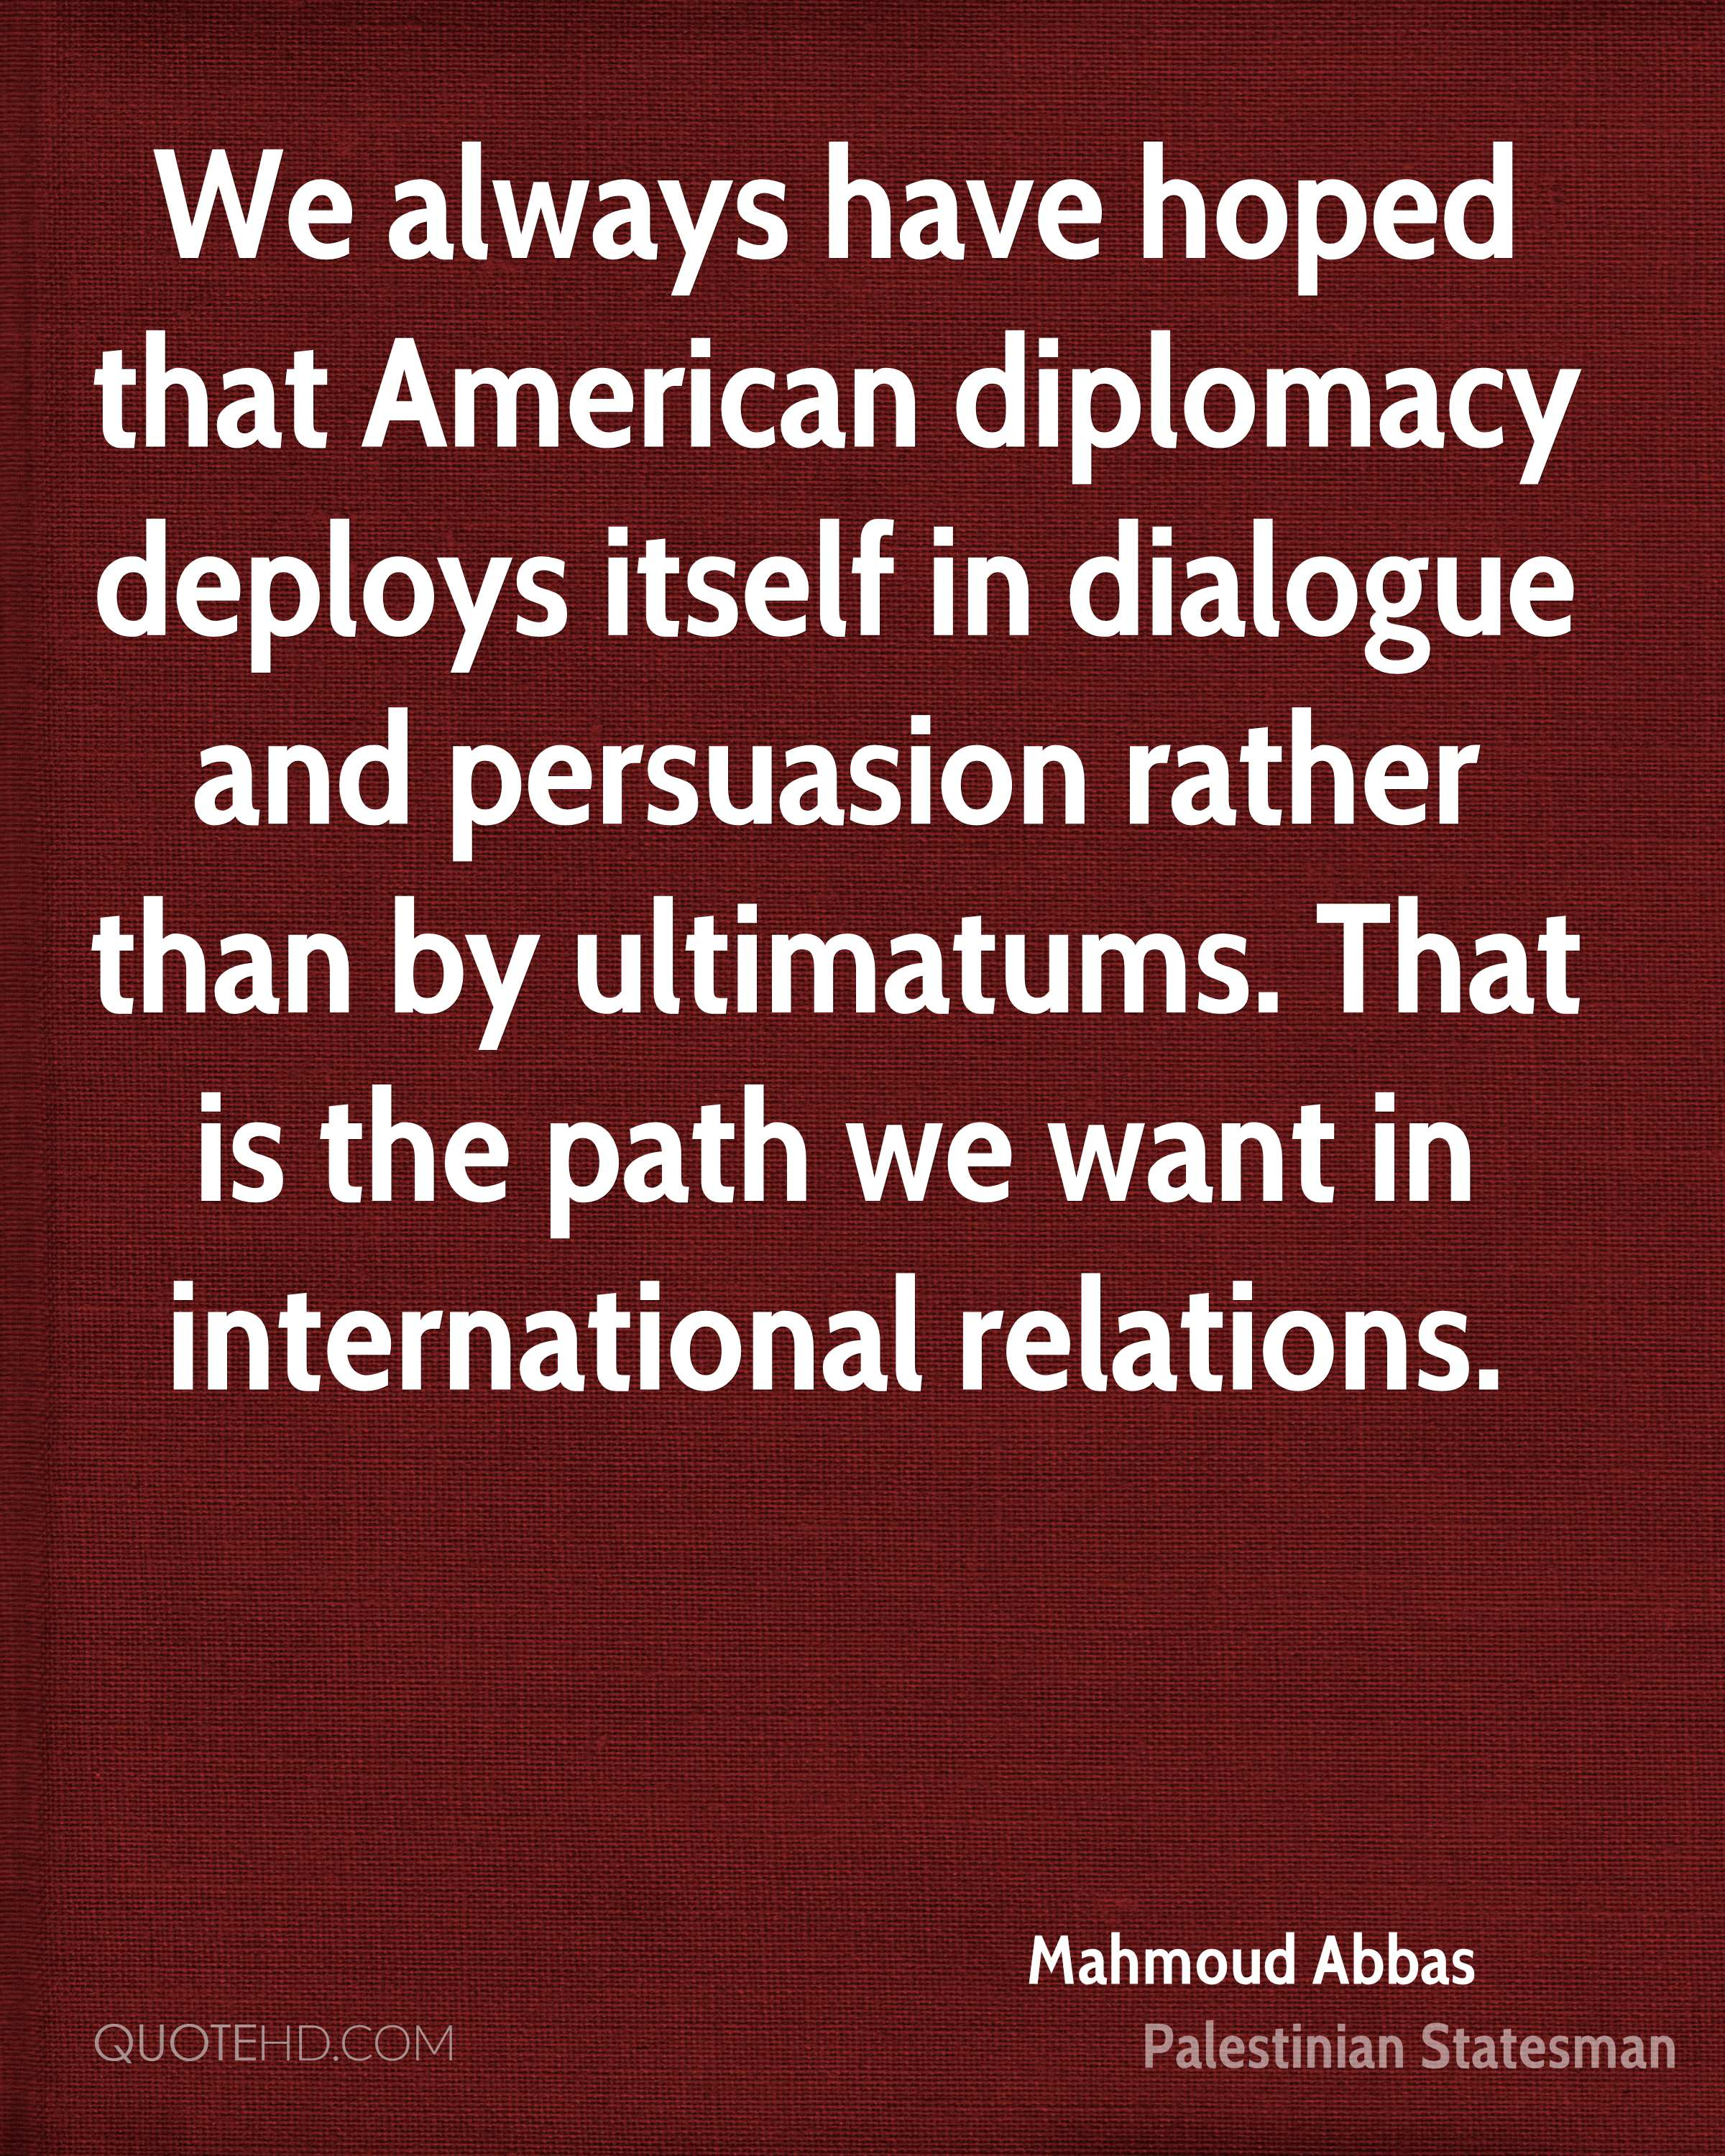 We always have hoped that American diplomacy deploys itself in dialogue and persuasion rather than by ultimatums. That is the path we want in international relations.